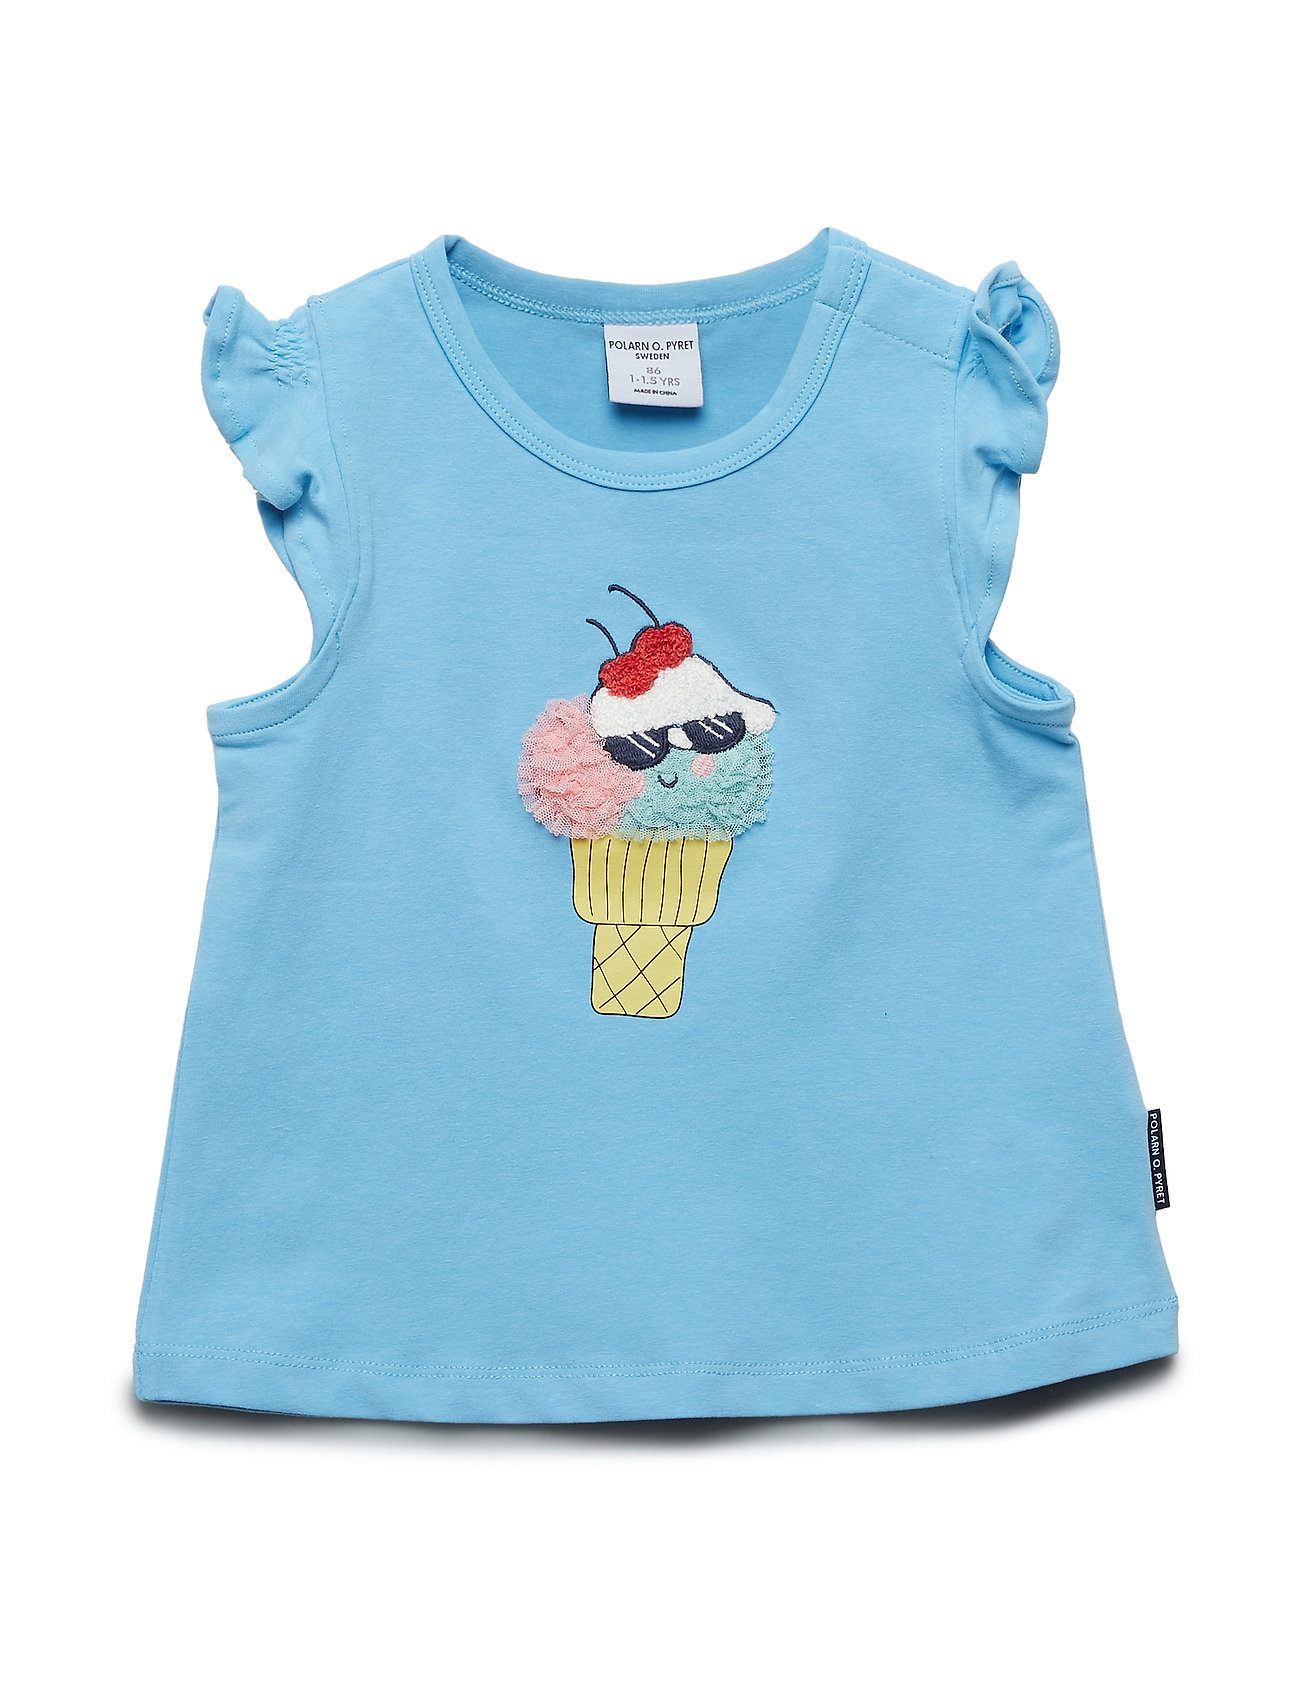 Polarn O. Pyret Top s/s print Preschool